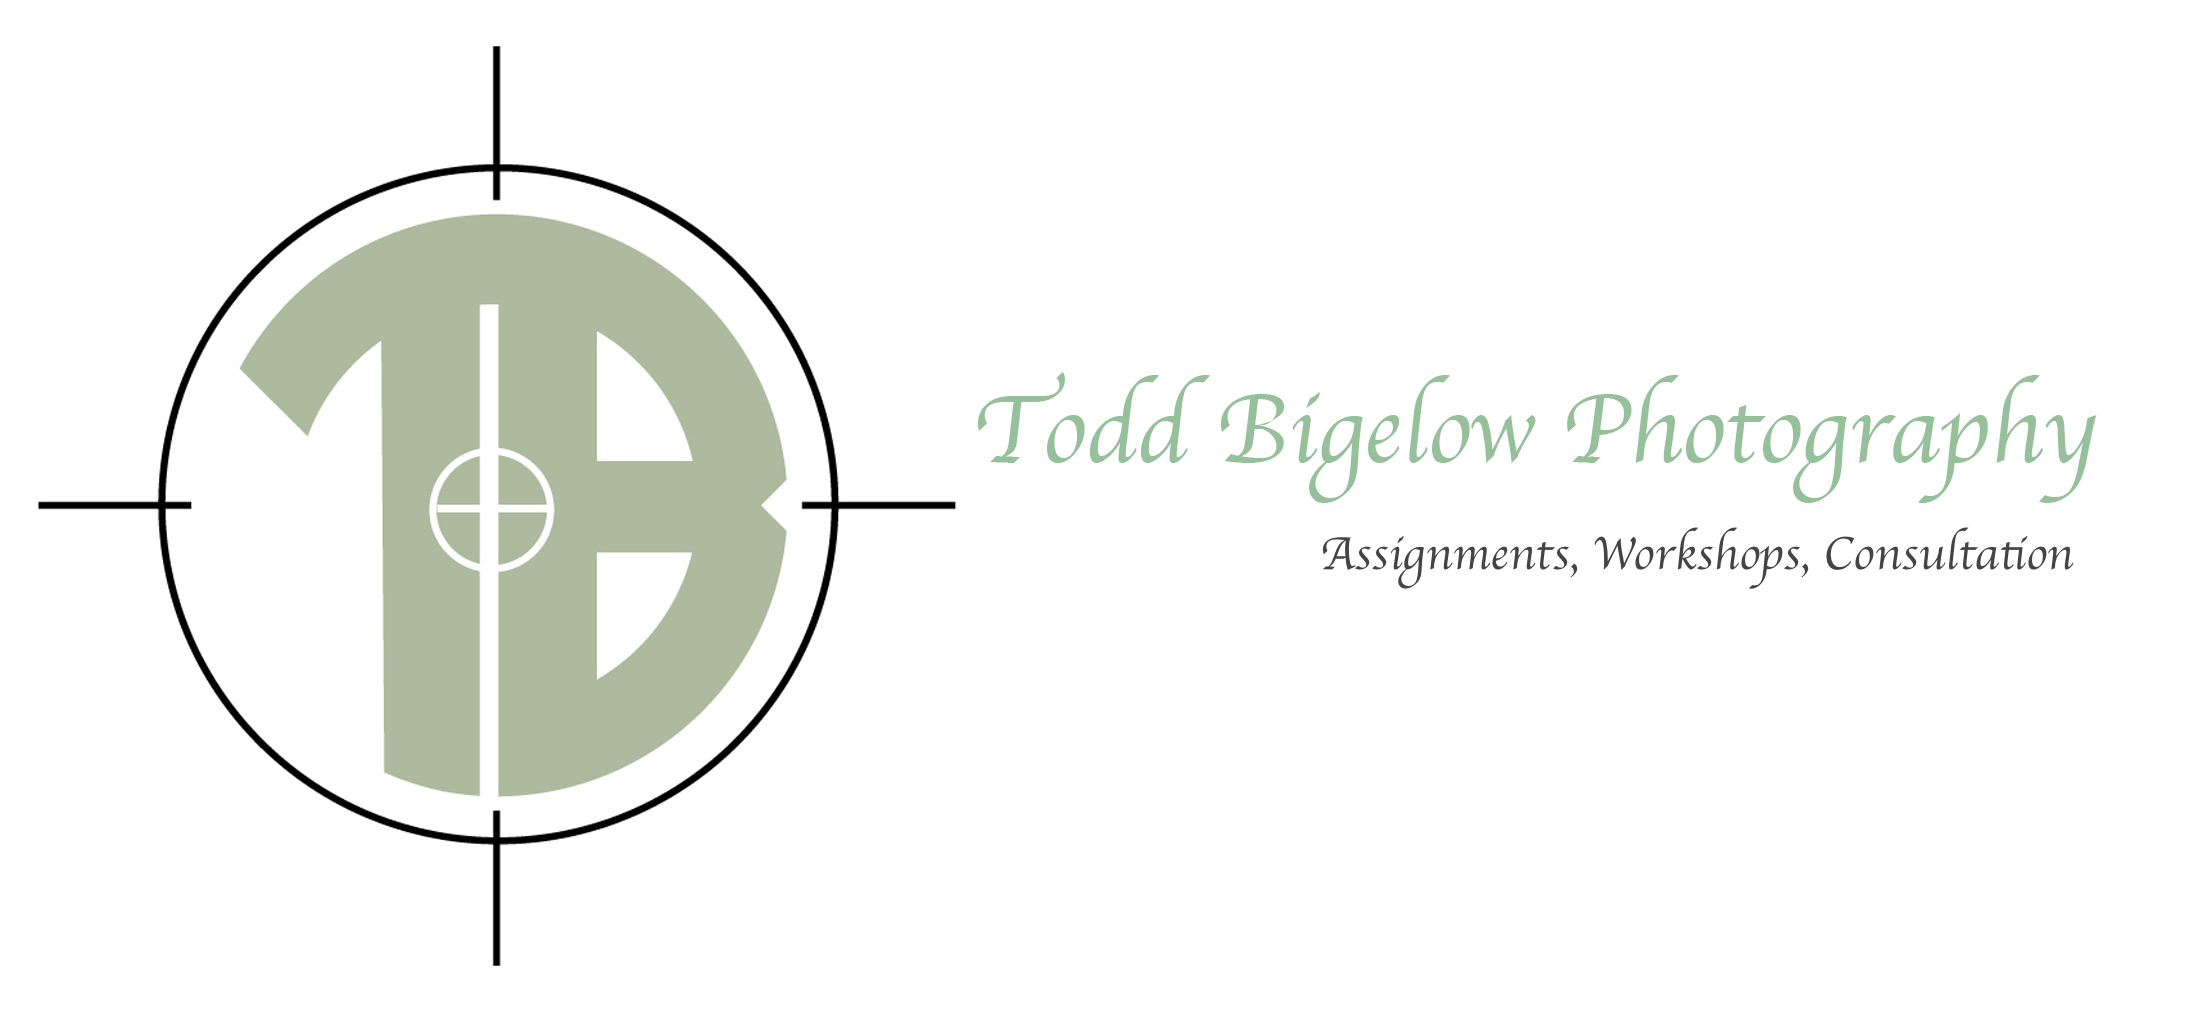 Todd Equipment Wiring Diagram Trusted Schematics Charter Bigelow Photography Assignments Consultations Speaking Cable Diagrams Business Of Consulting